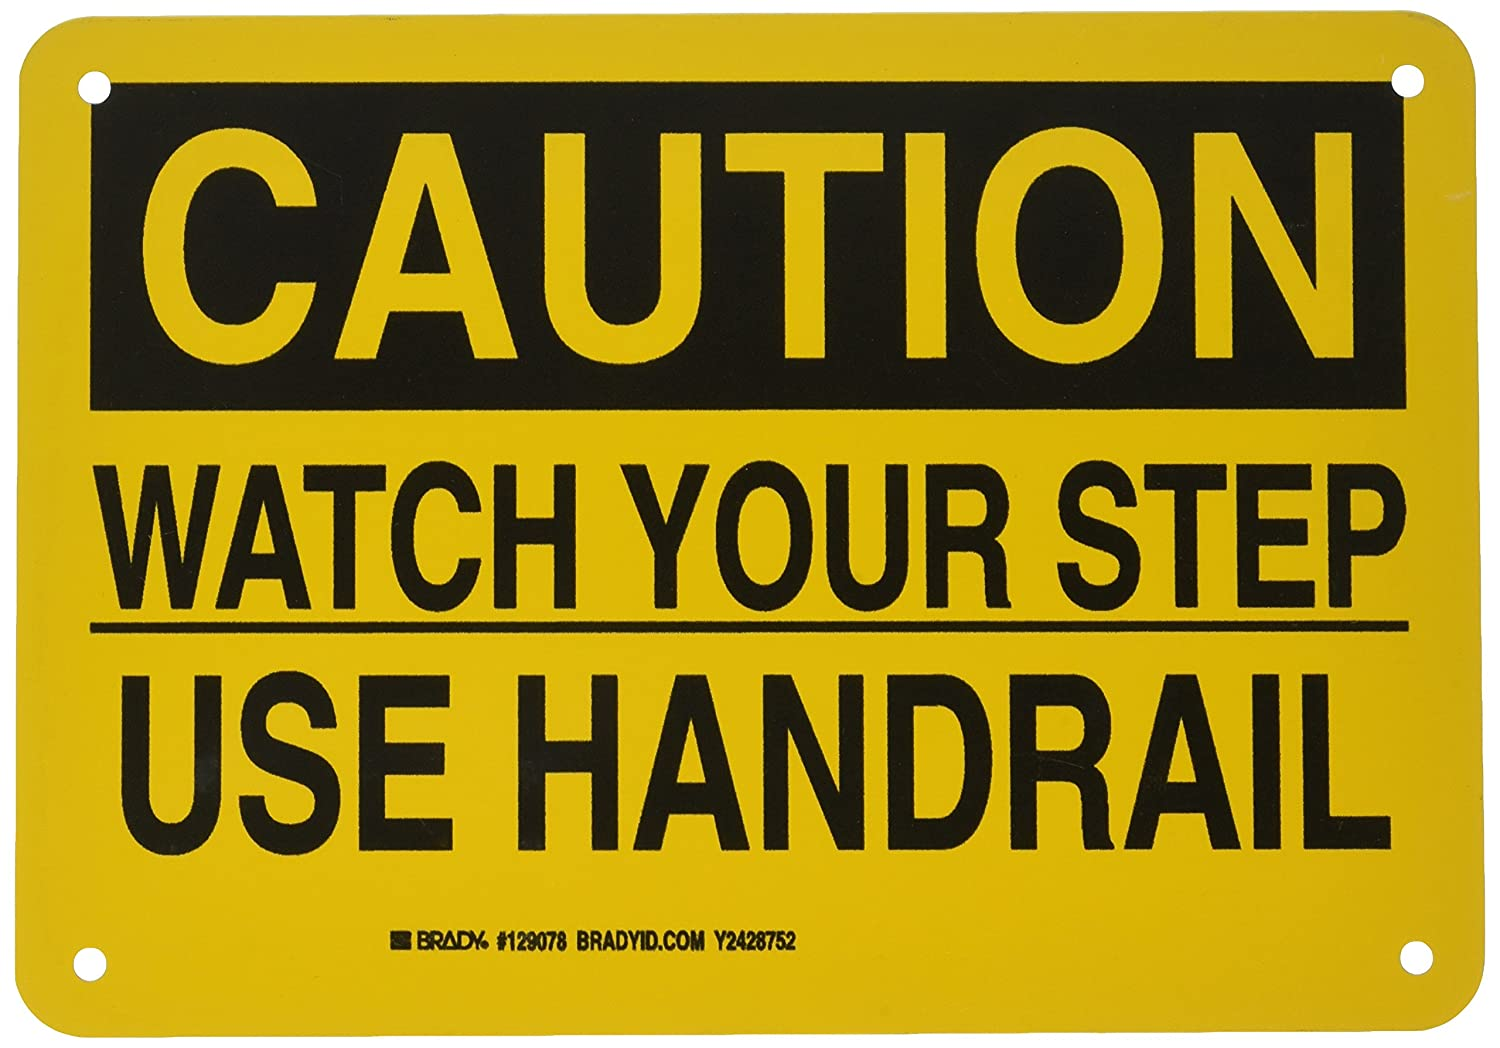 Black on Yellow LegendWatch Your Step Use Handrail 7 Height 10 Width 10 Width Brady 129078 Machine and Operational Sign 7 Height LegendWatch Your Step Use Handrail